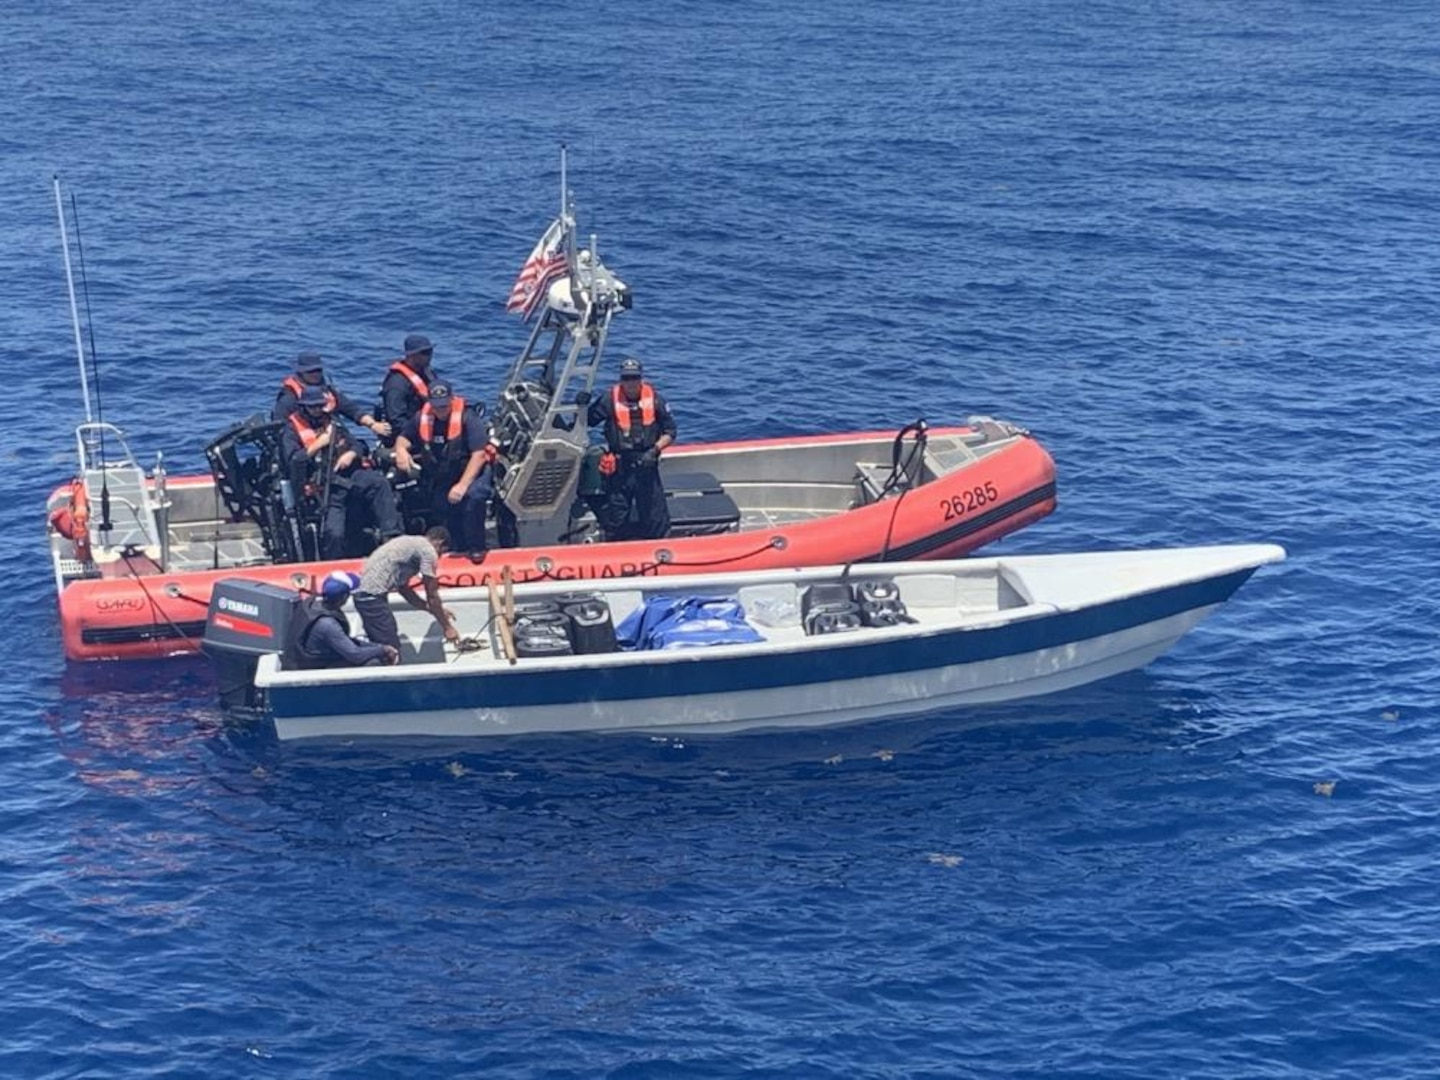 The crew of the U.S. Coast Guard Cutter Oliver Berry (WPC 1124) travels to their new Homeport in Honolulu, Sept. 22, 2017. The Oliver Berry is the first of three 154-foot fast response cutters to be stationed in Hawaii. (U.S. Coast Guard photo by Petty Officer 3rd Class Amanda Levasseur/Released)